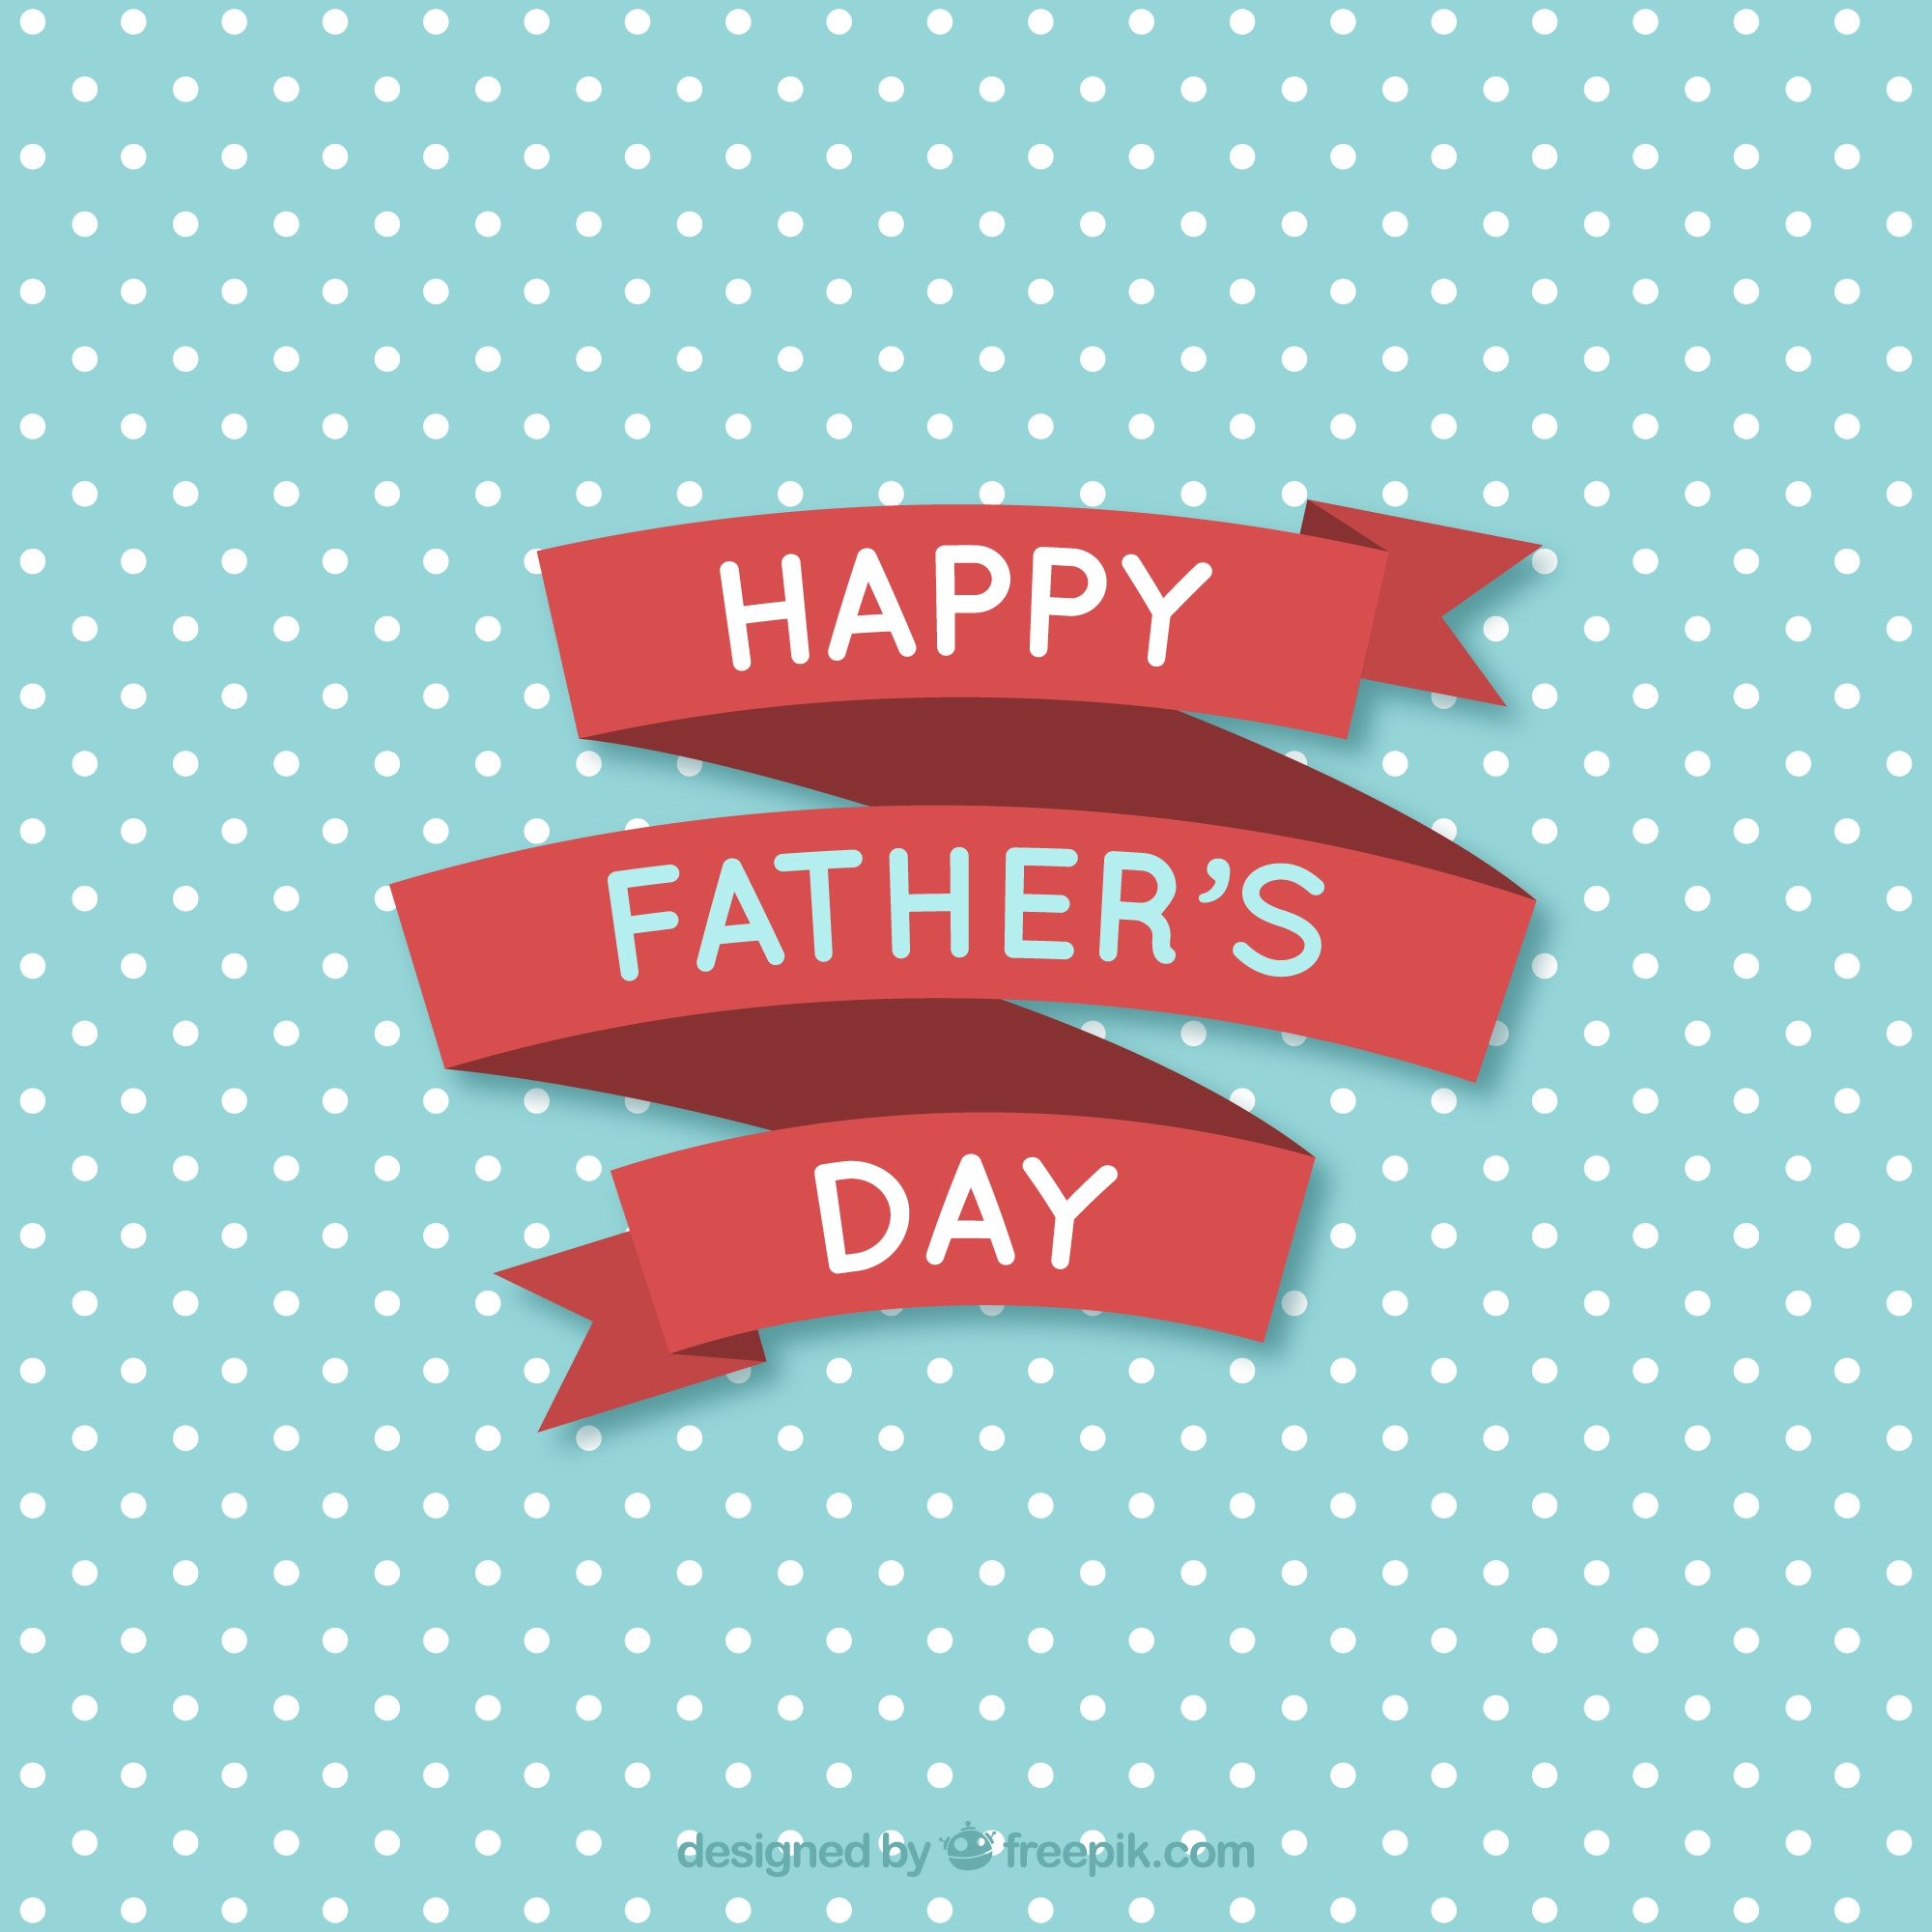 Happy Father's day free graphic